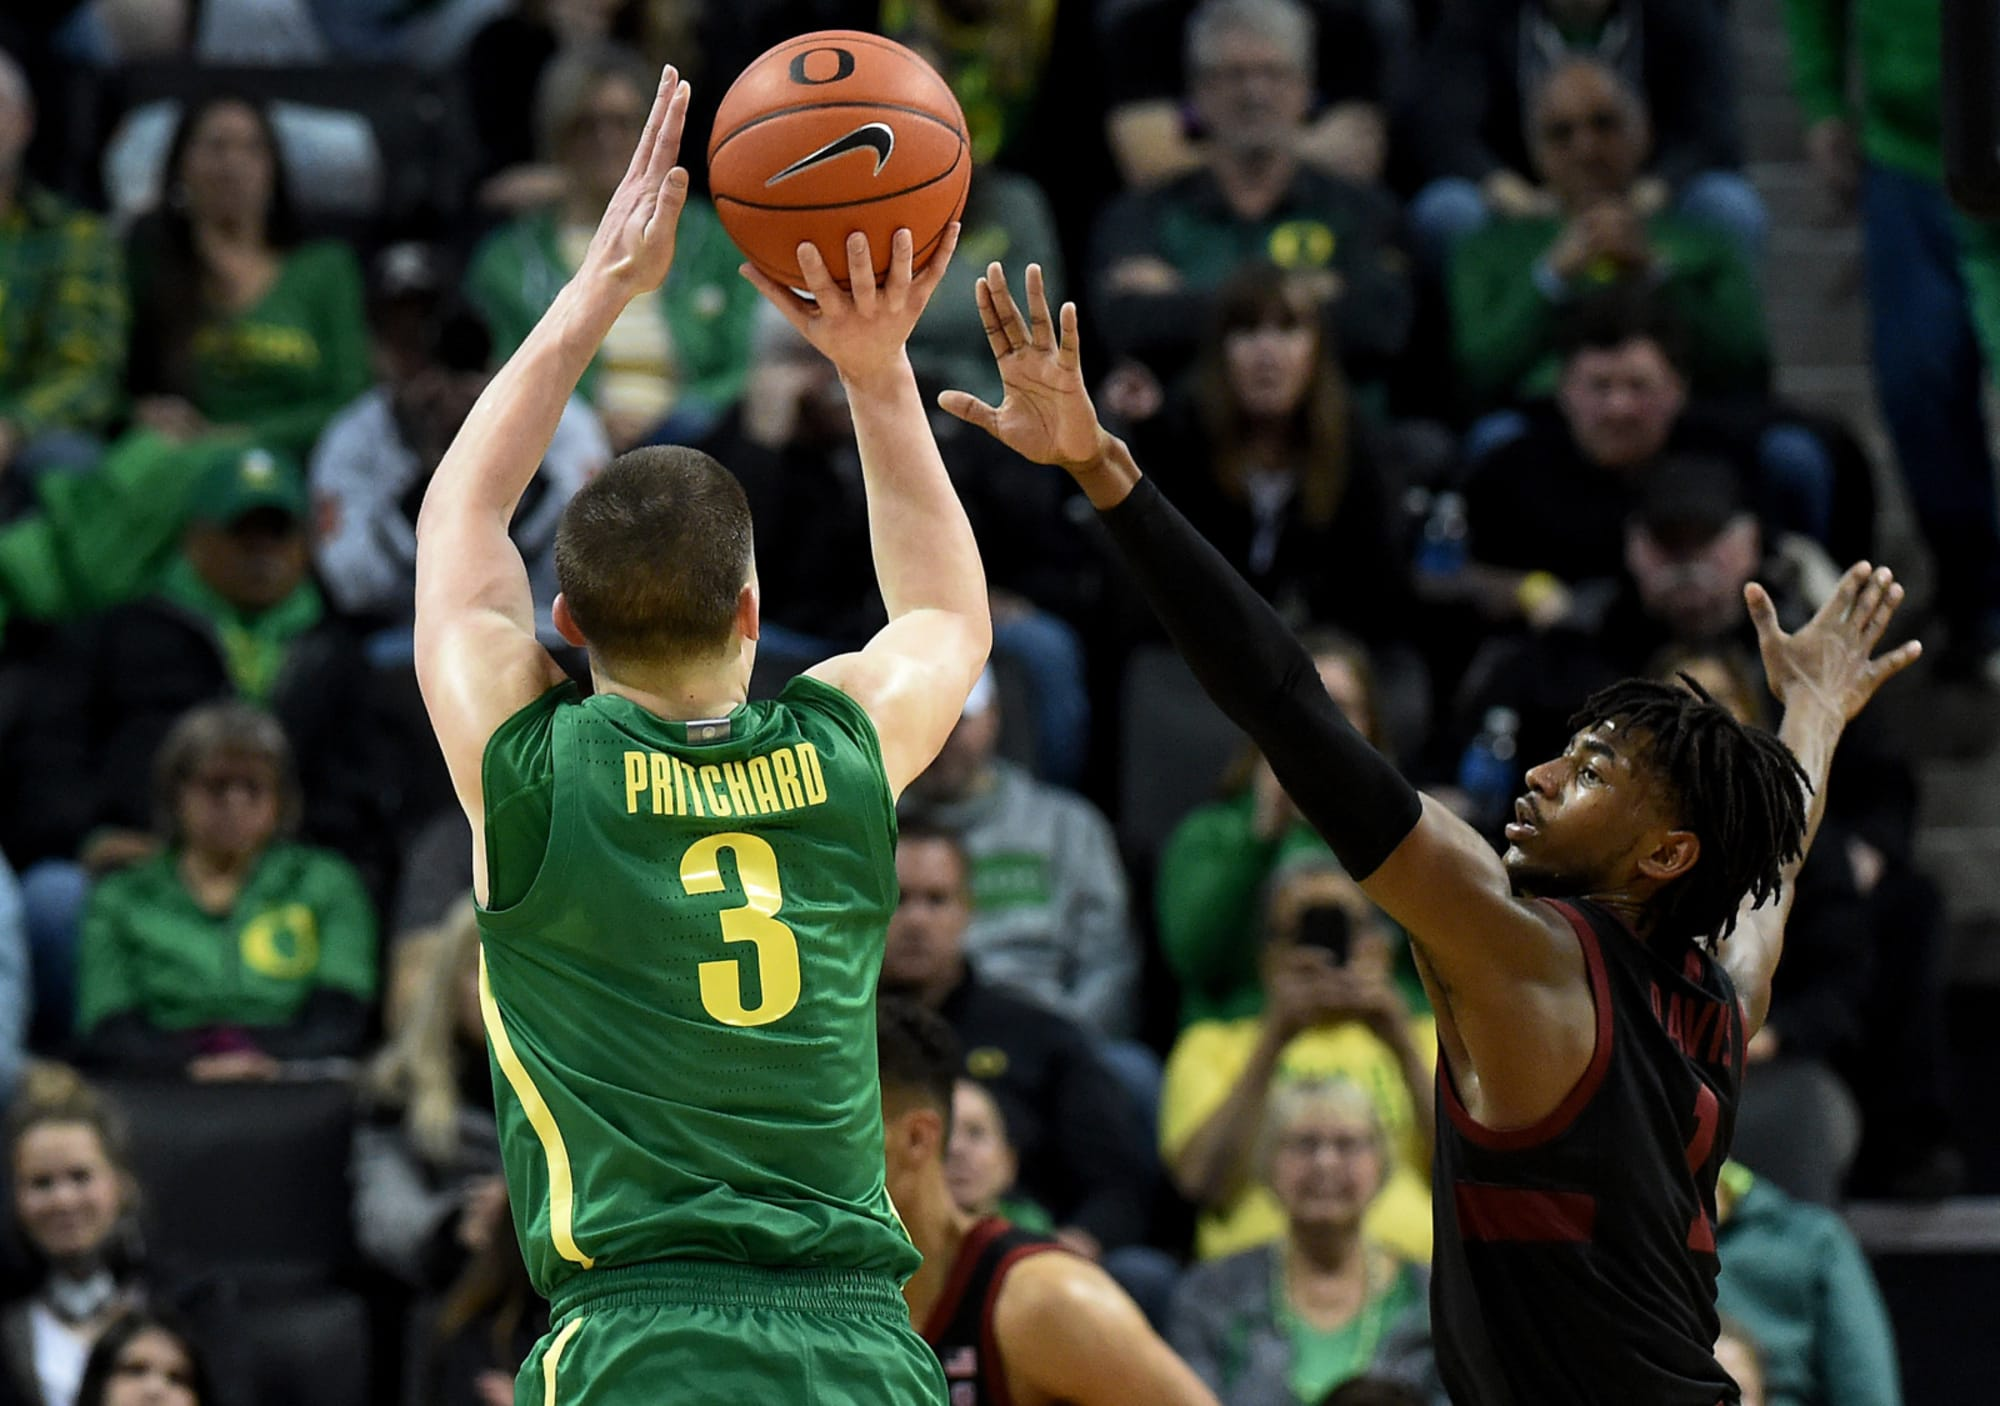 The Boston Celtics landed a stud in drafting point guard Payton Pritchard